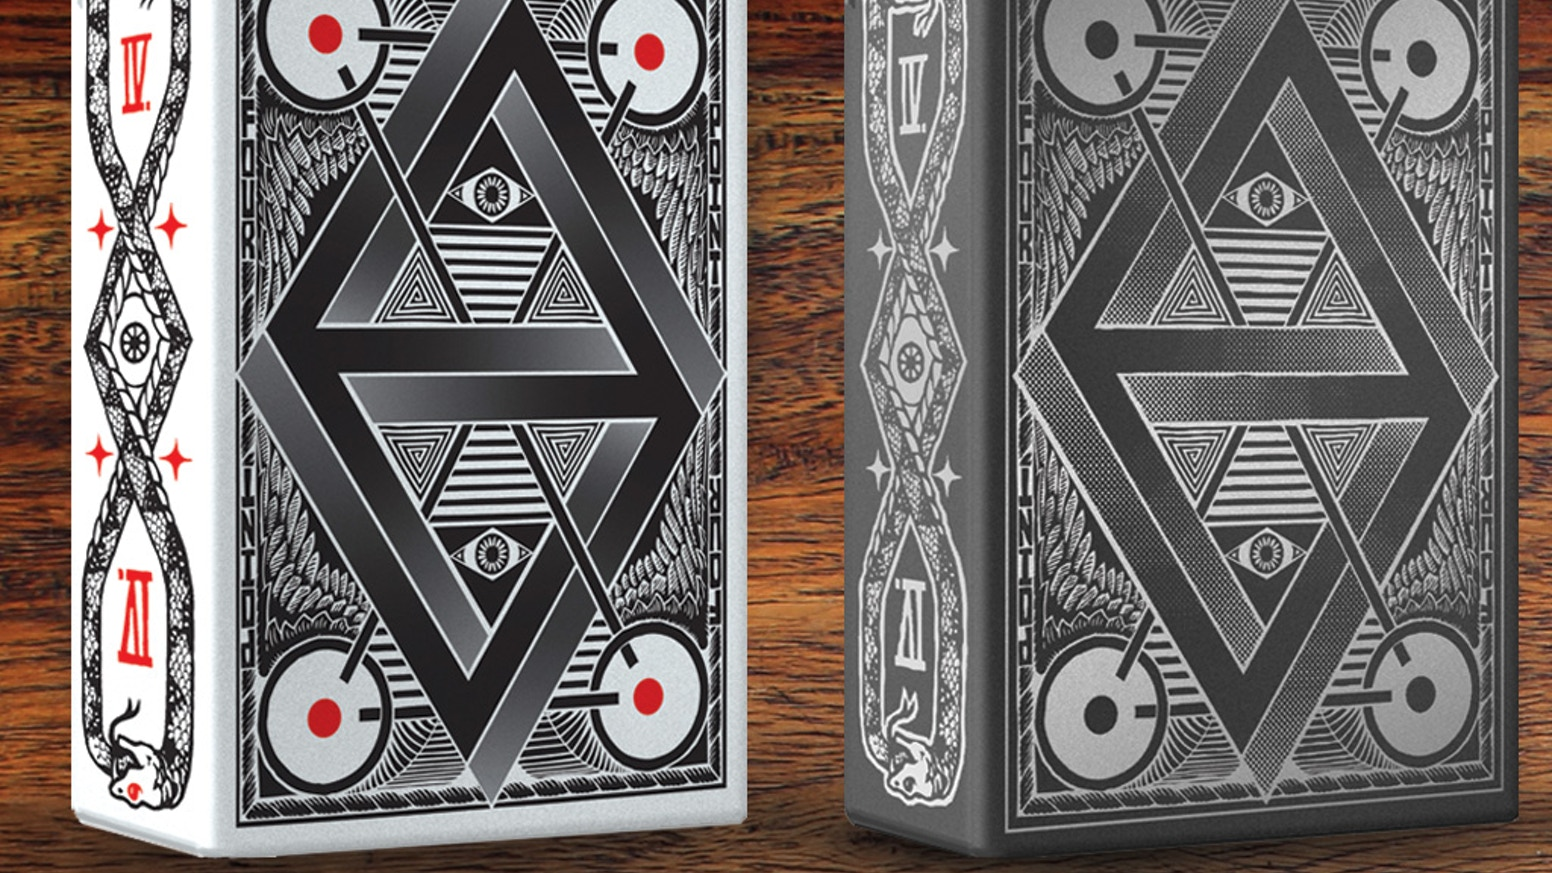 A unique deck of playing cards, illustrated by hand and professionally printed by the USPCC. Original drawings available as rewards.